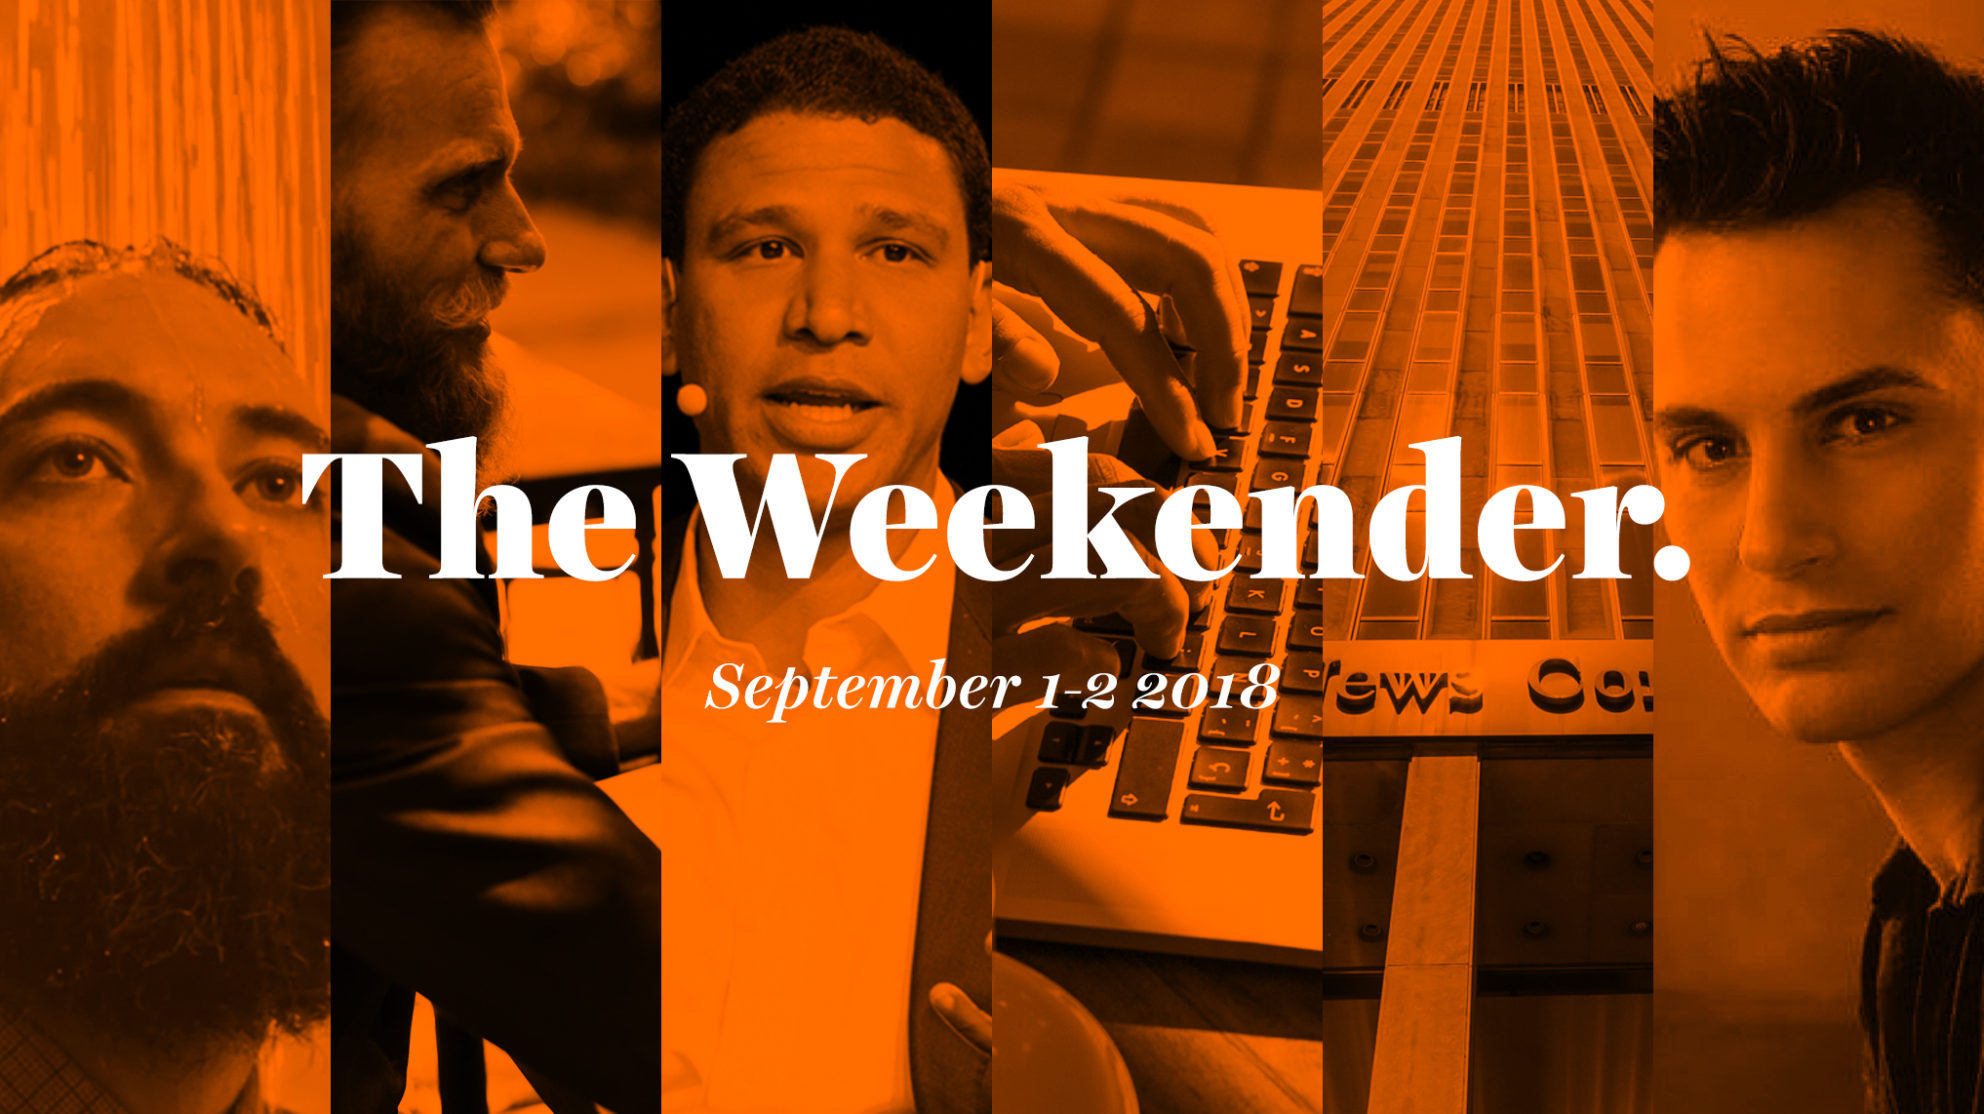 The Inman Weekender, September 1-2, 2018